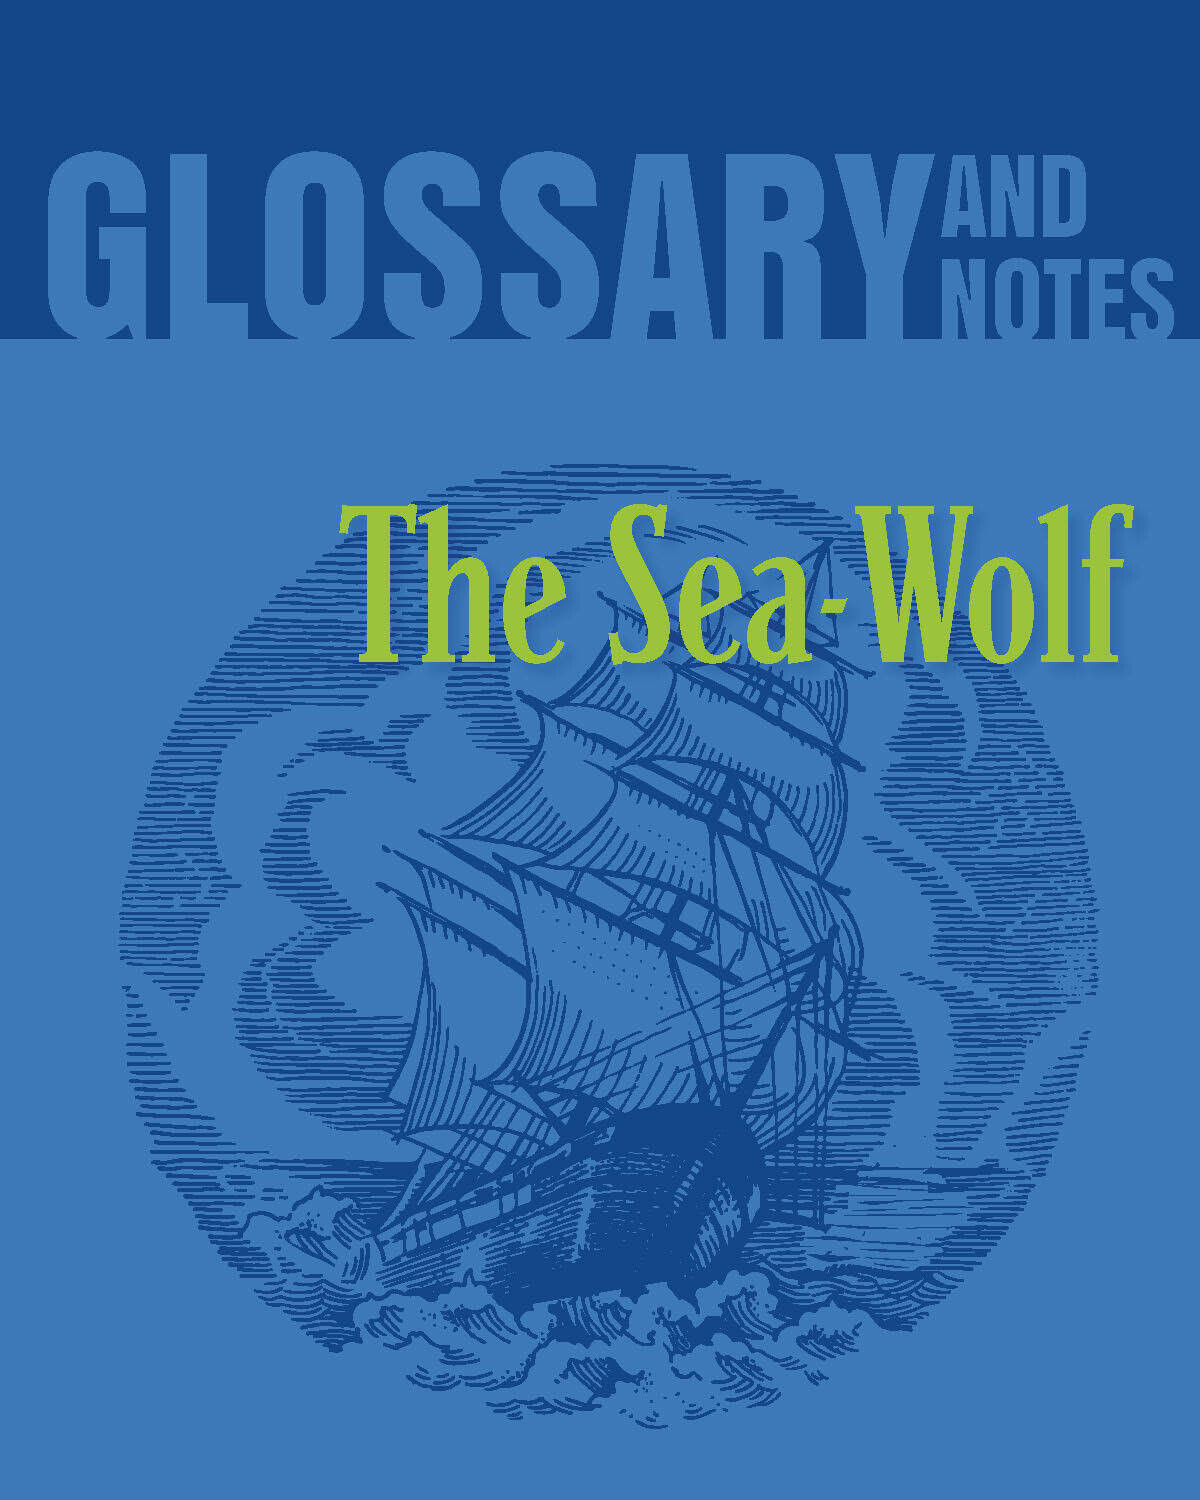 Glossary and Notes: The Sea-Wolf